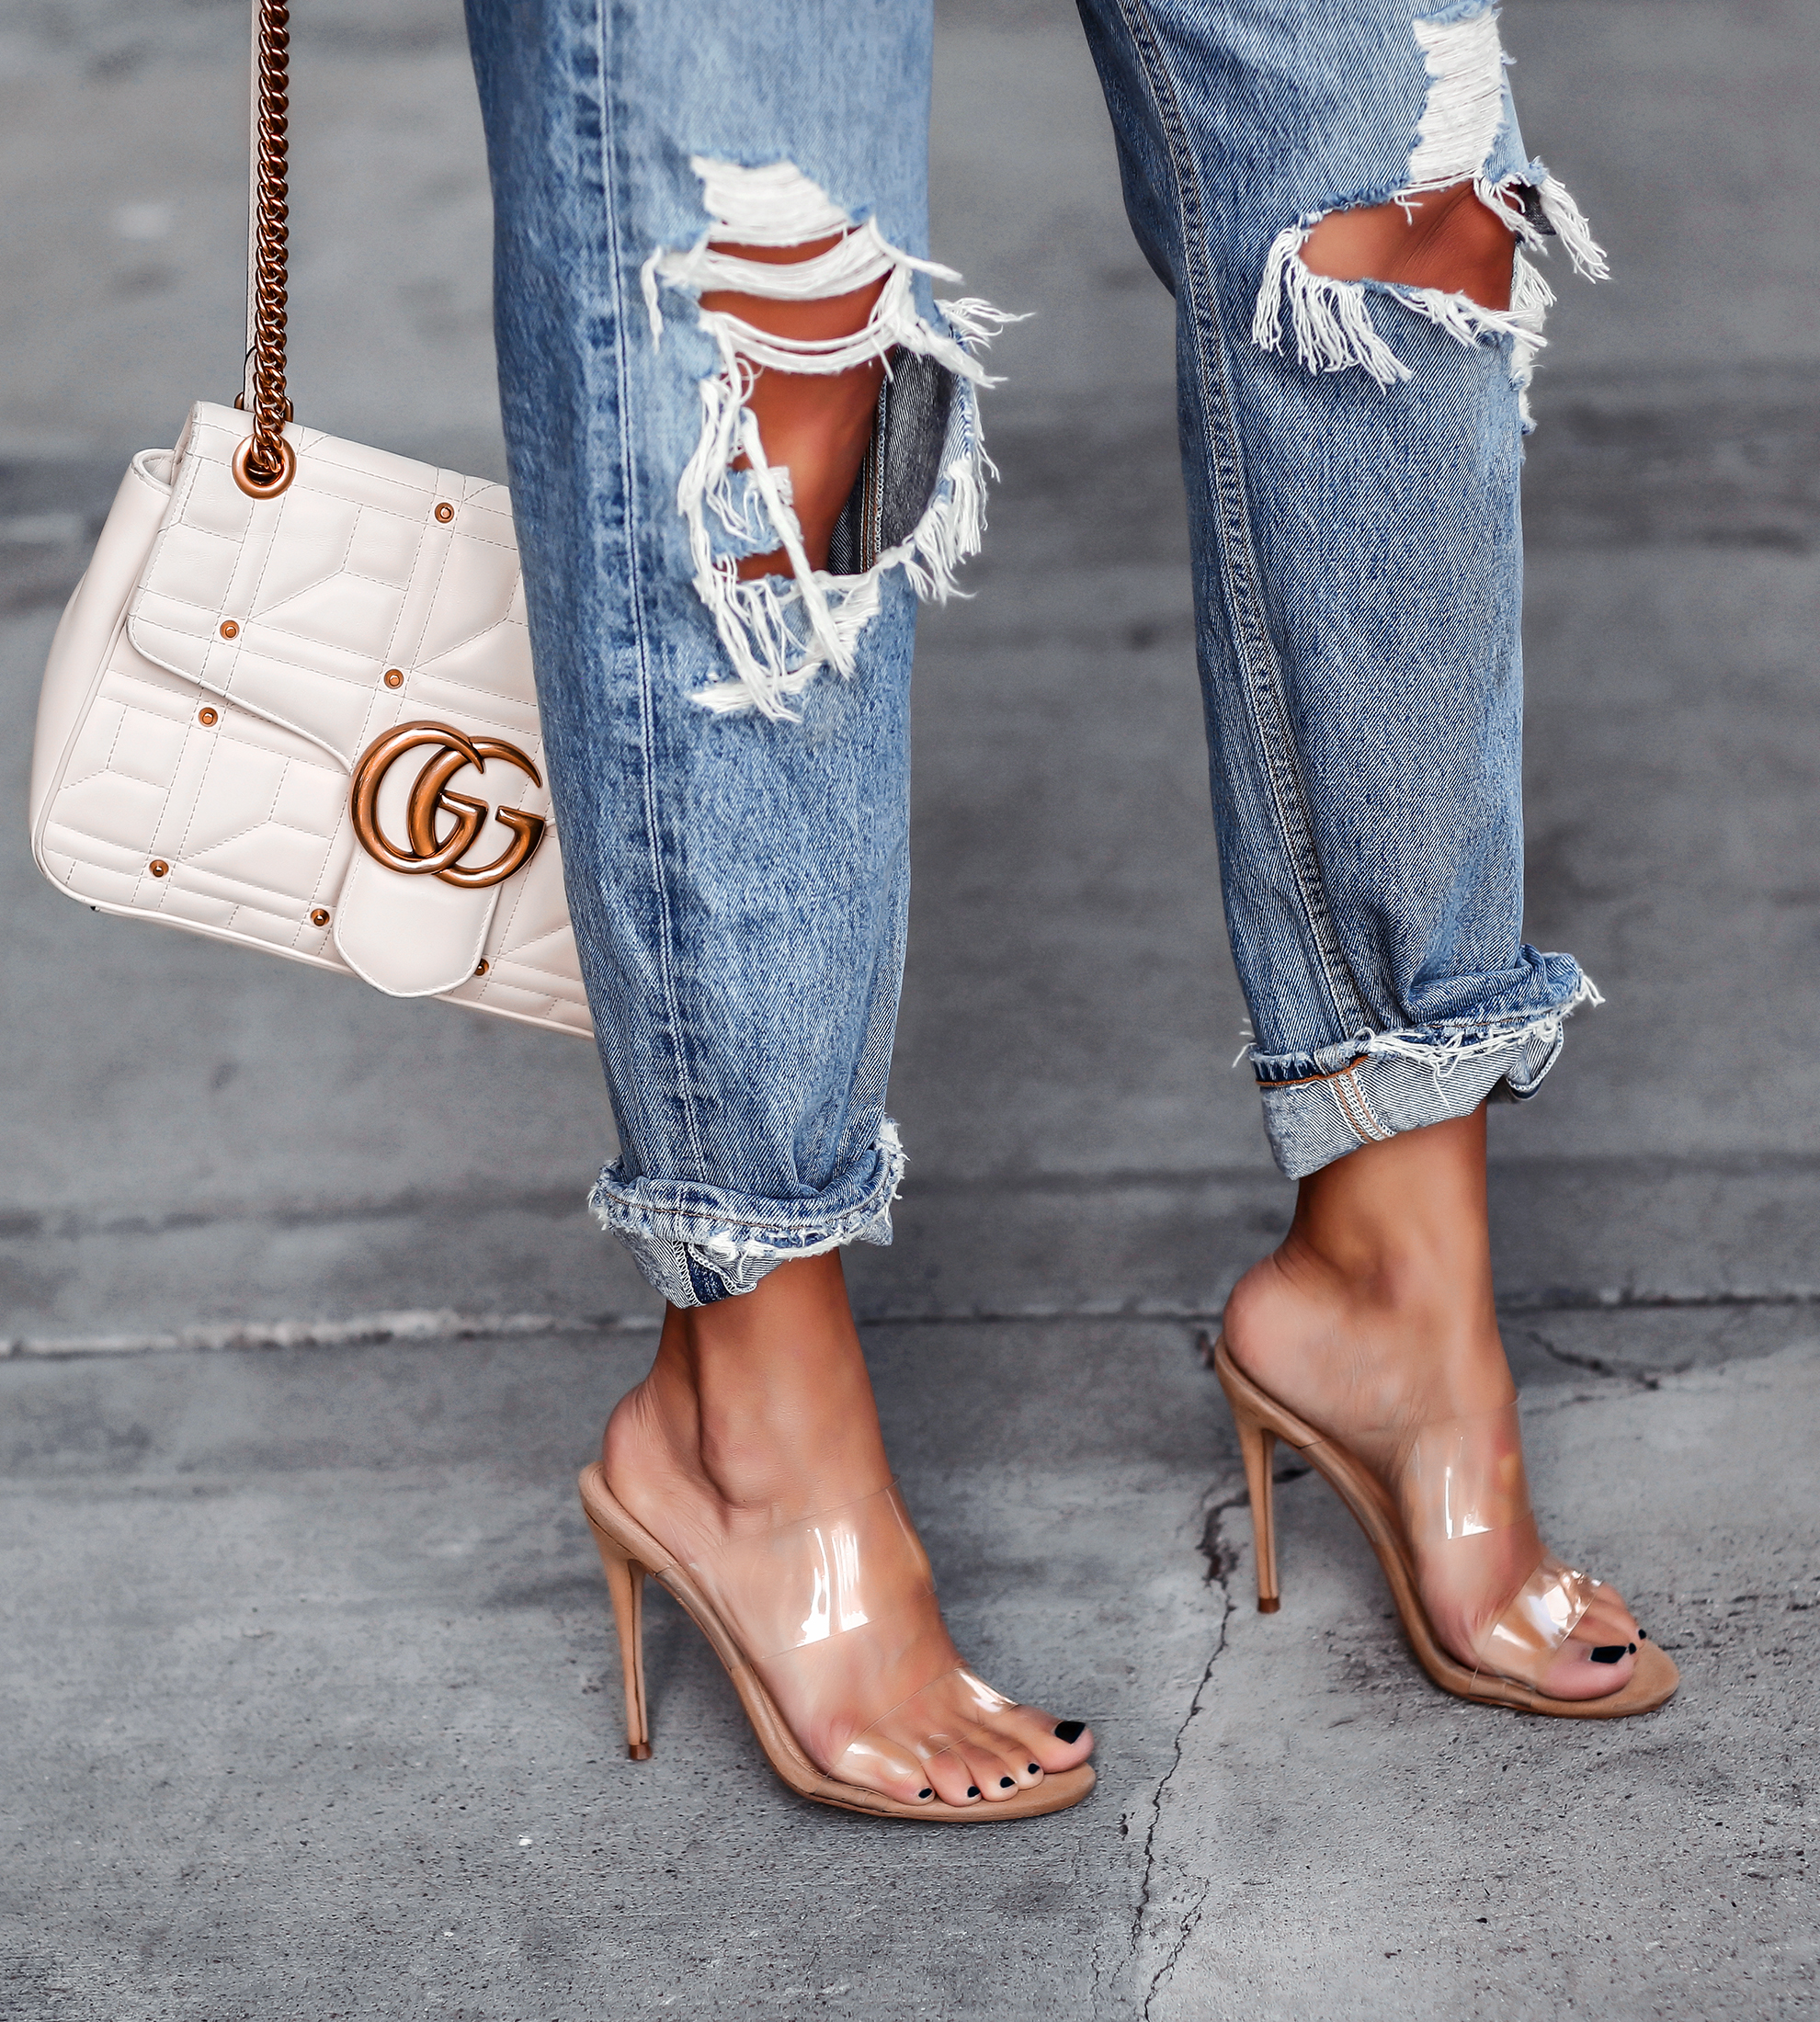 Steve Madden Clear Mules Ripped jeans White Gucci Marmont Bag